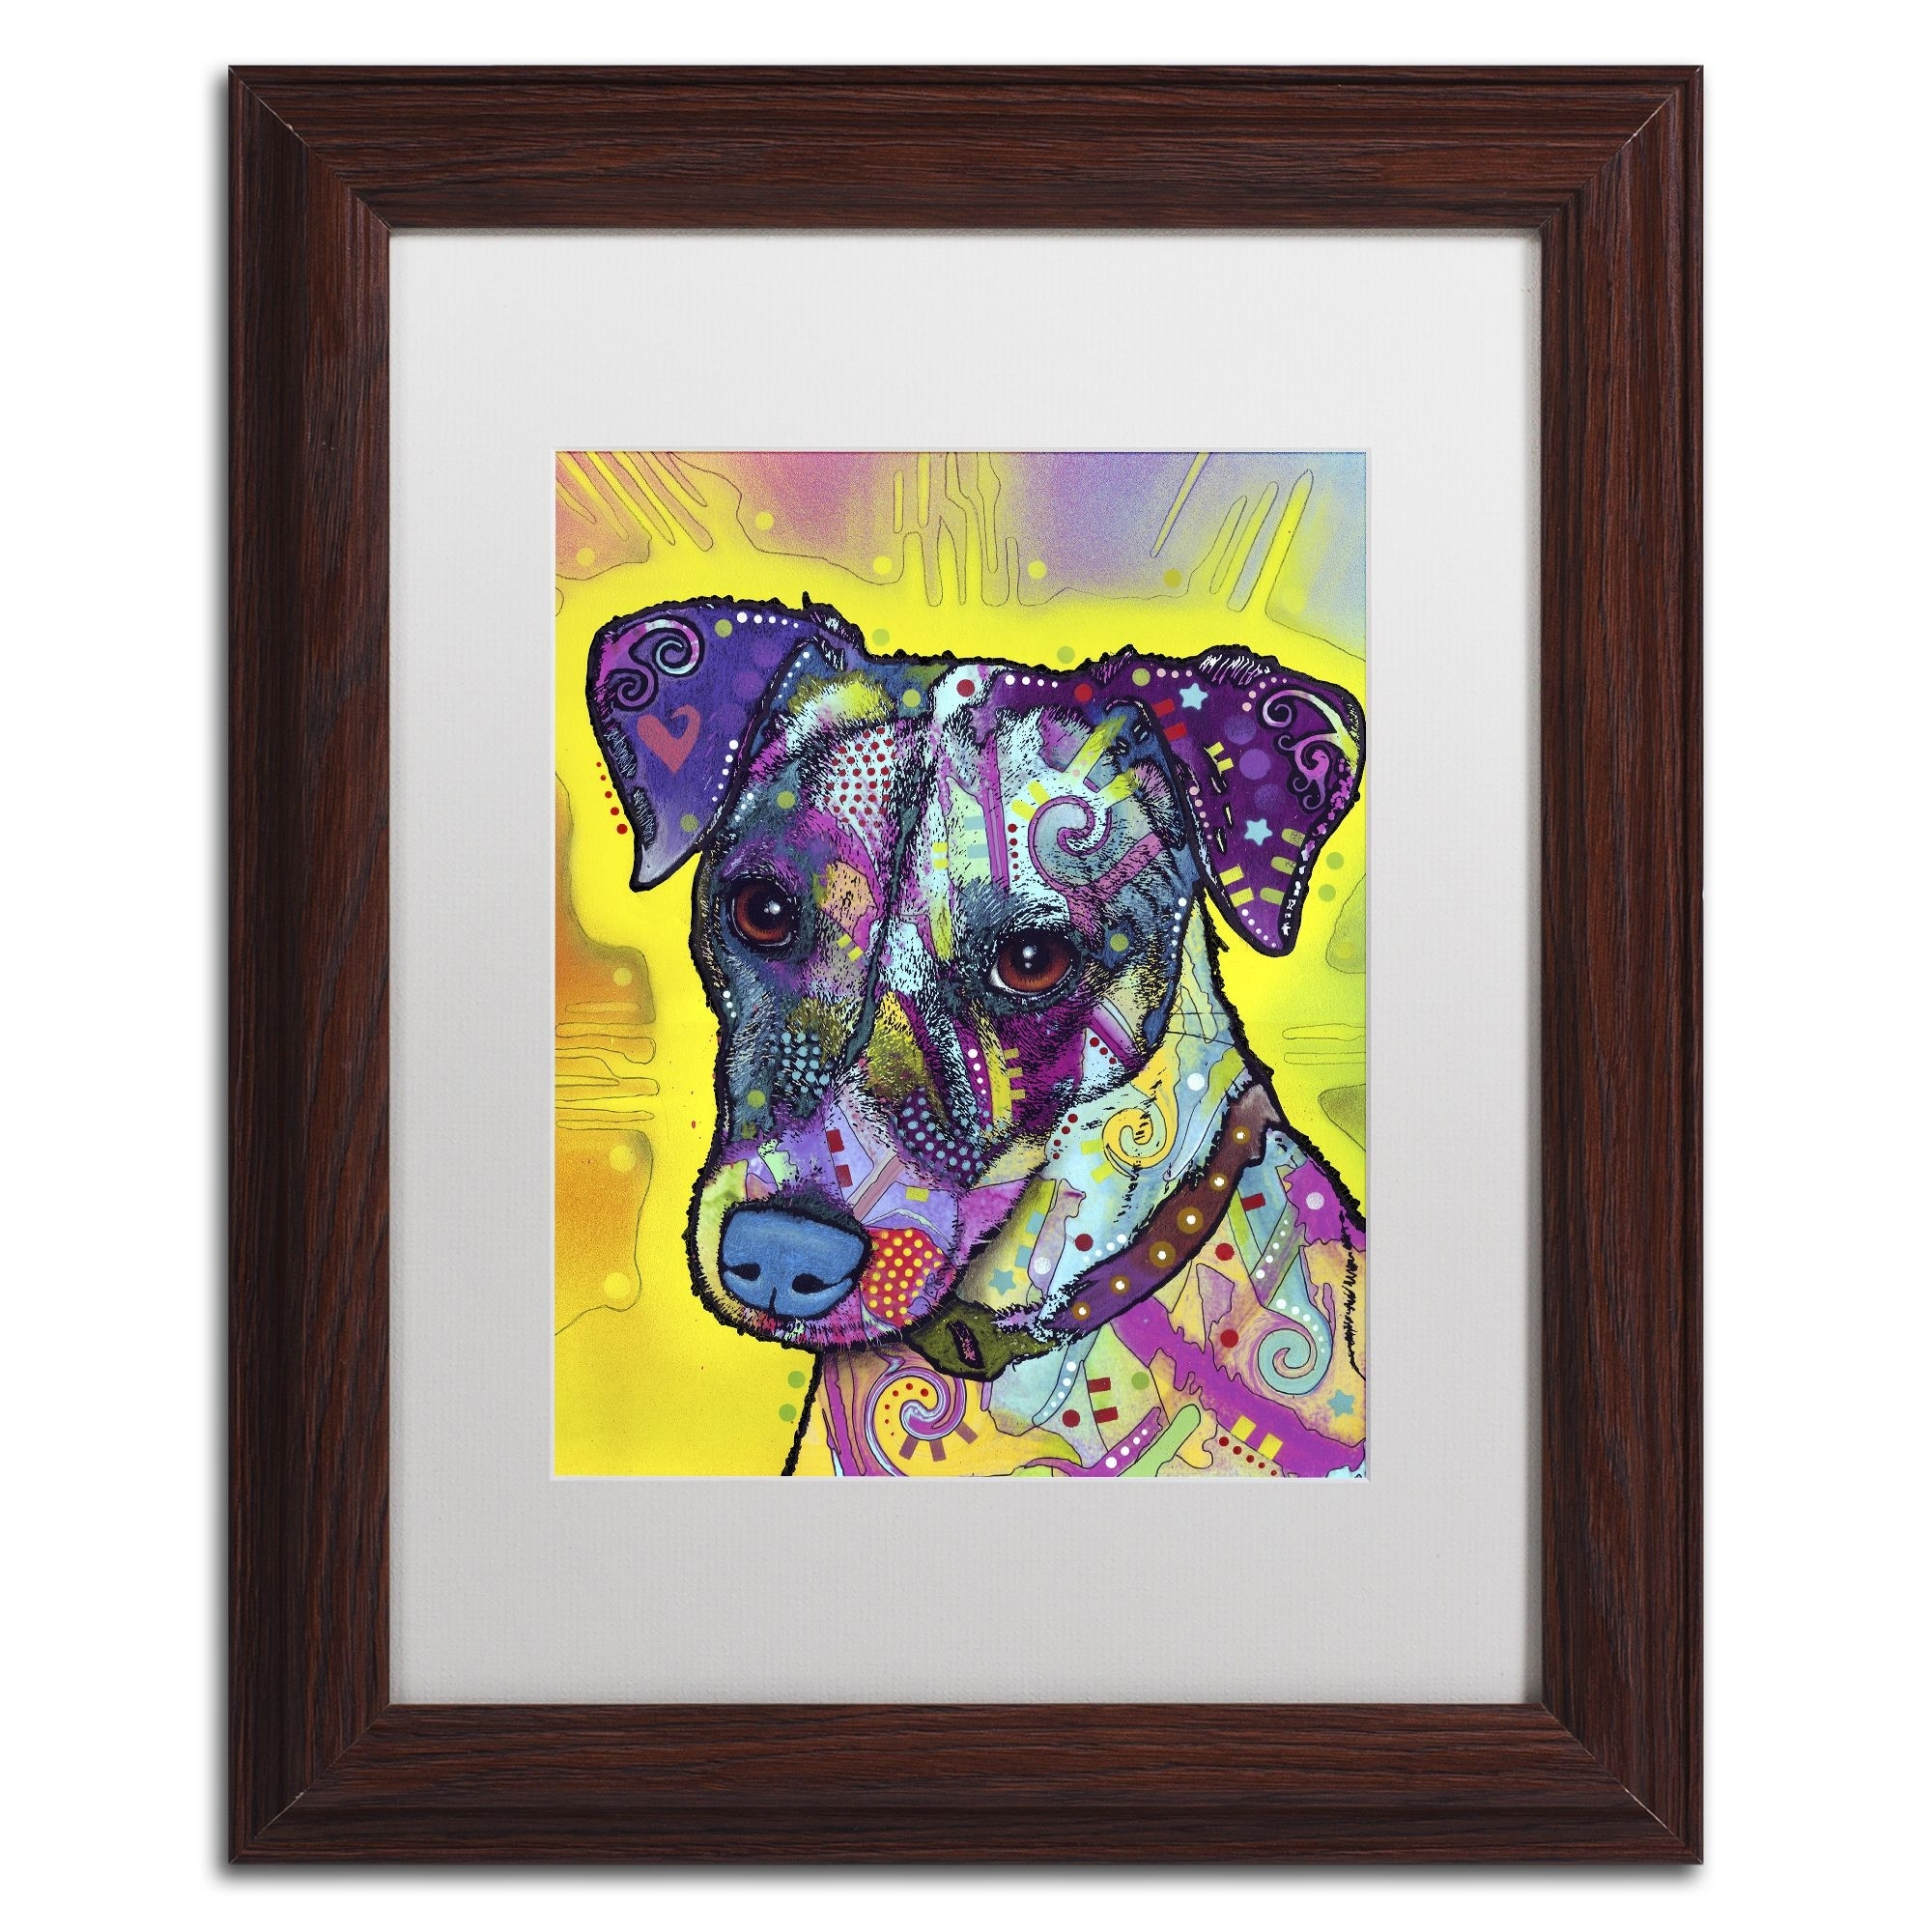 Dean Russo 'jack Russell' Matted Framed Art | Products | Pinterest With Regard To Recent Dog Art Framed Prints (Gallery 7 of 15)